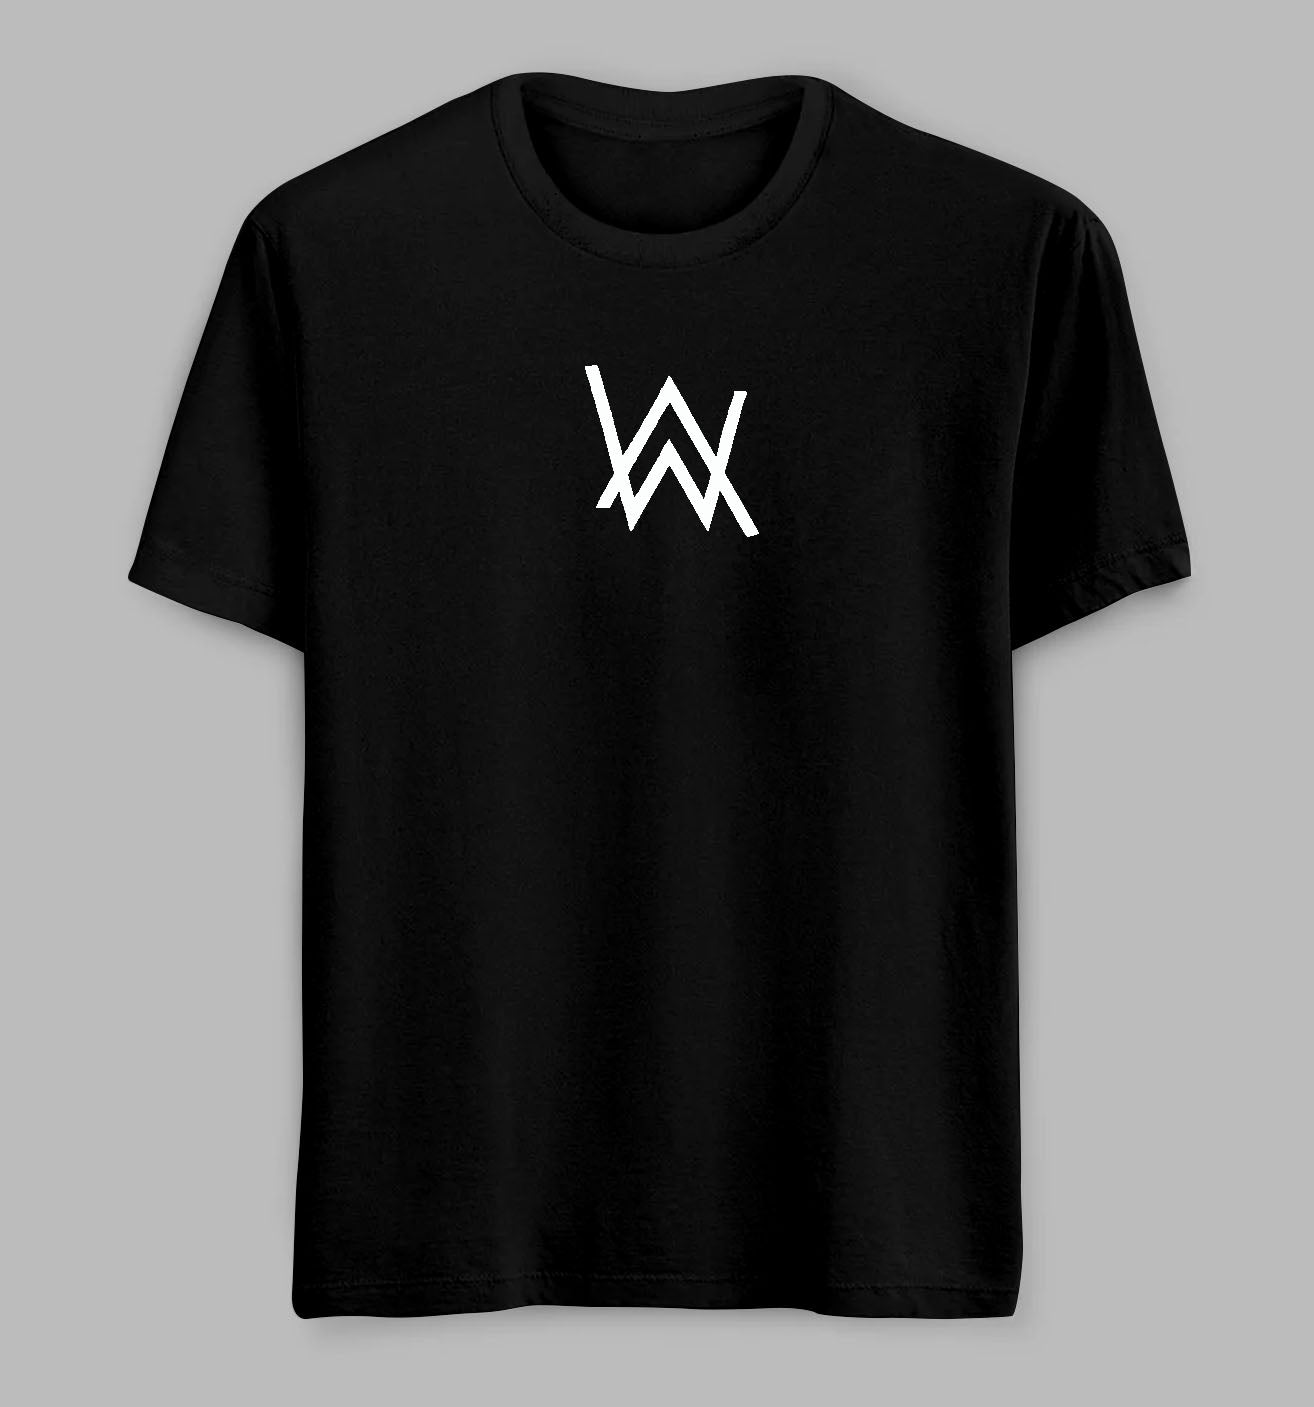 Alan Walker Tees/ Tshirts